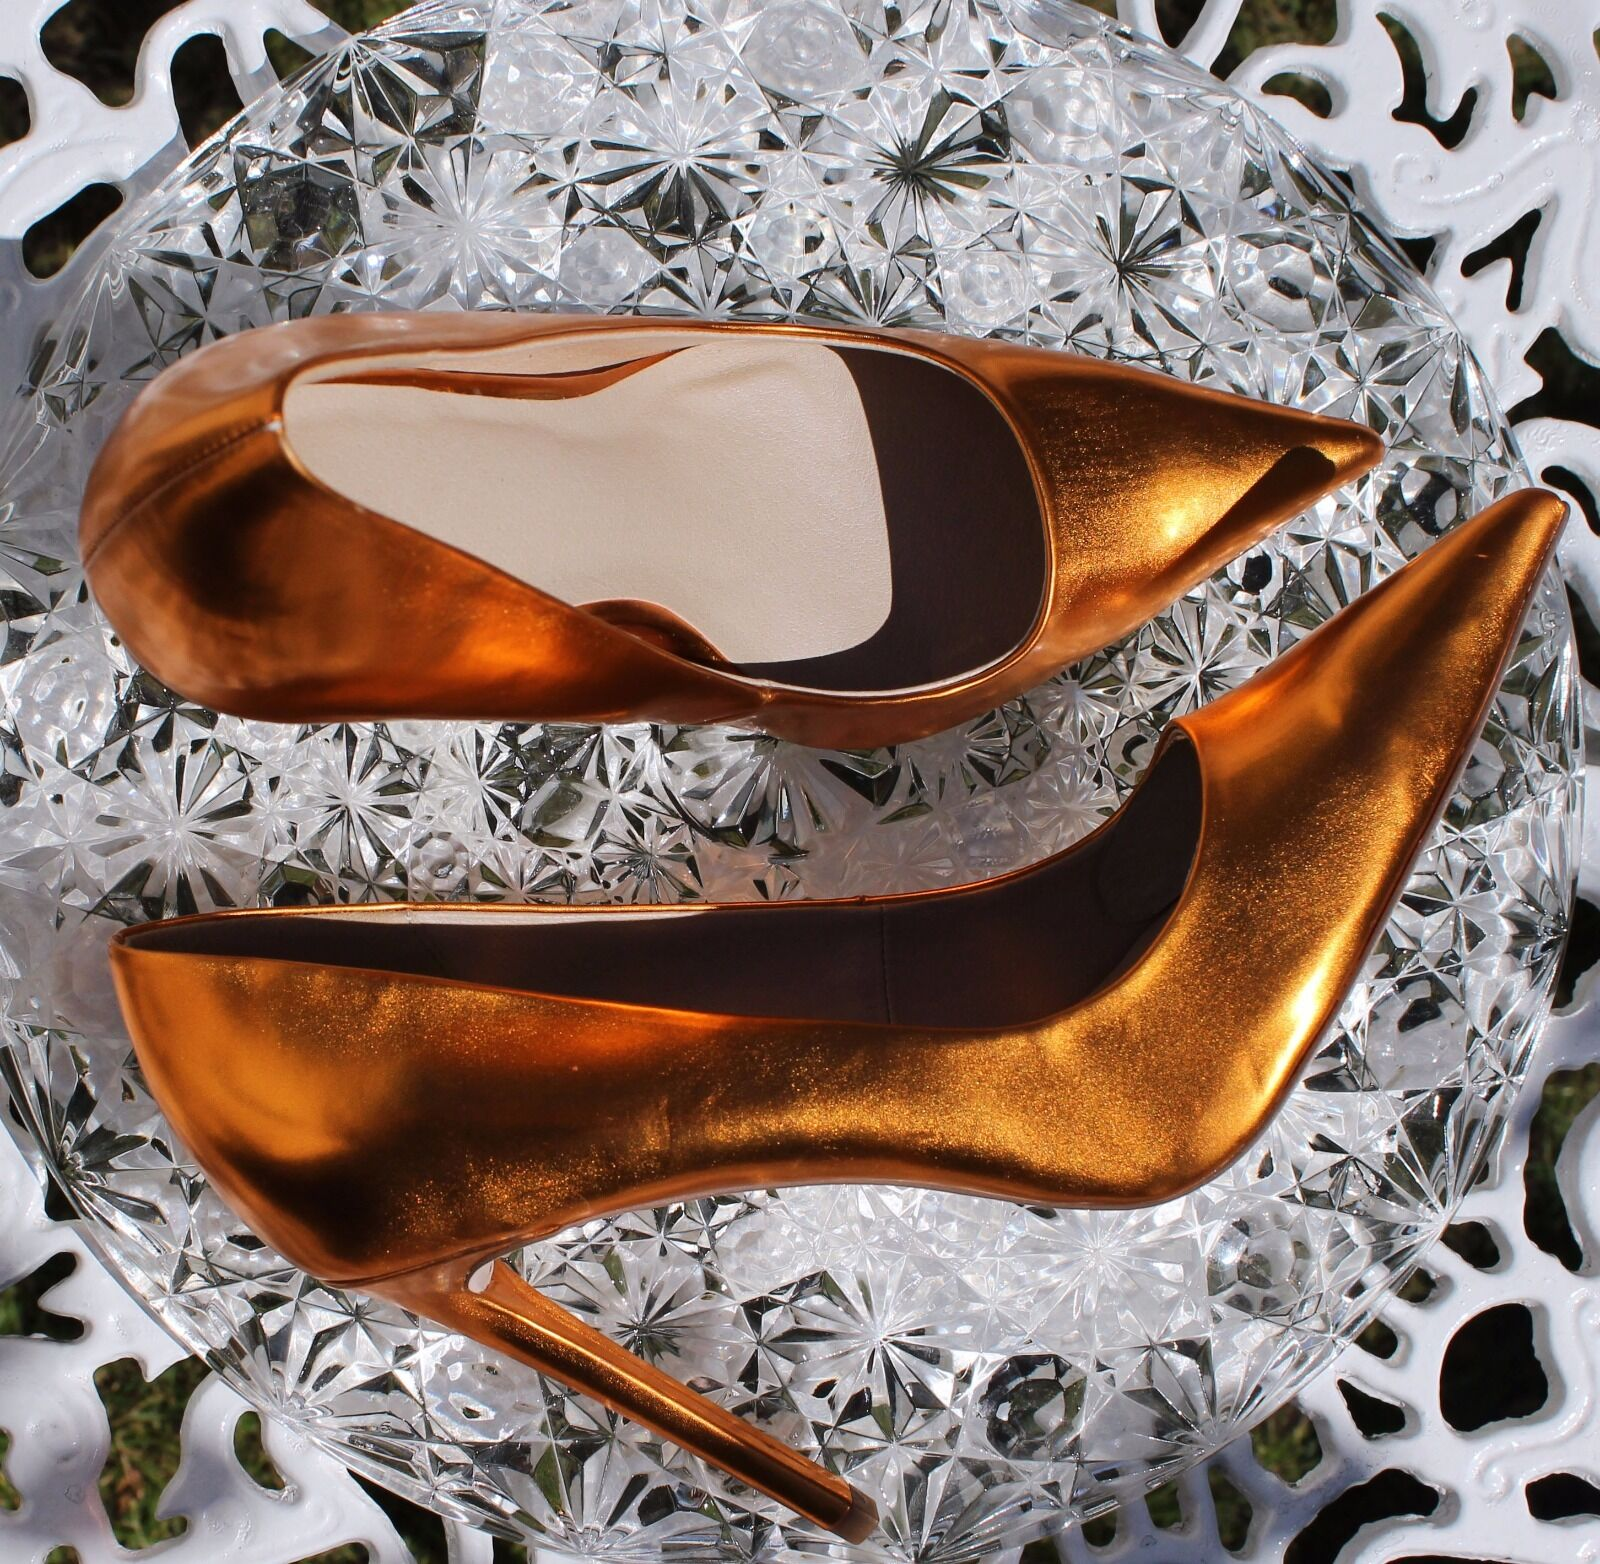 NEW HTF RARE ASOS Copper Copper Copper Stilettos High Heels Pointed Toe UK 5.5 EU 39 131f71